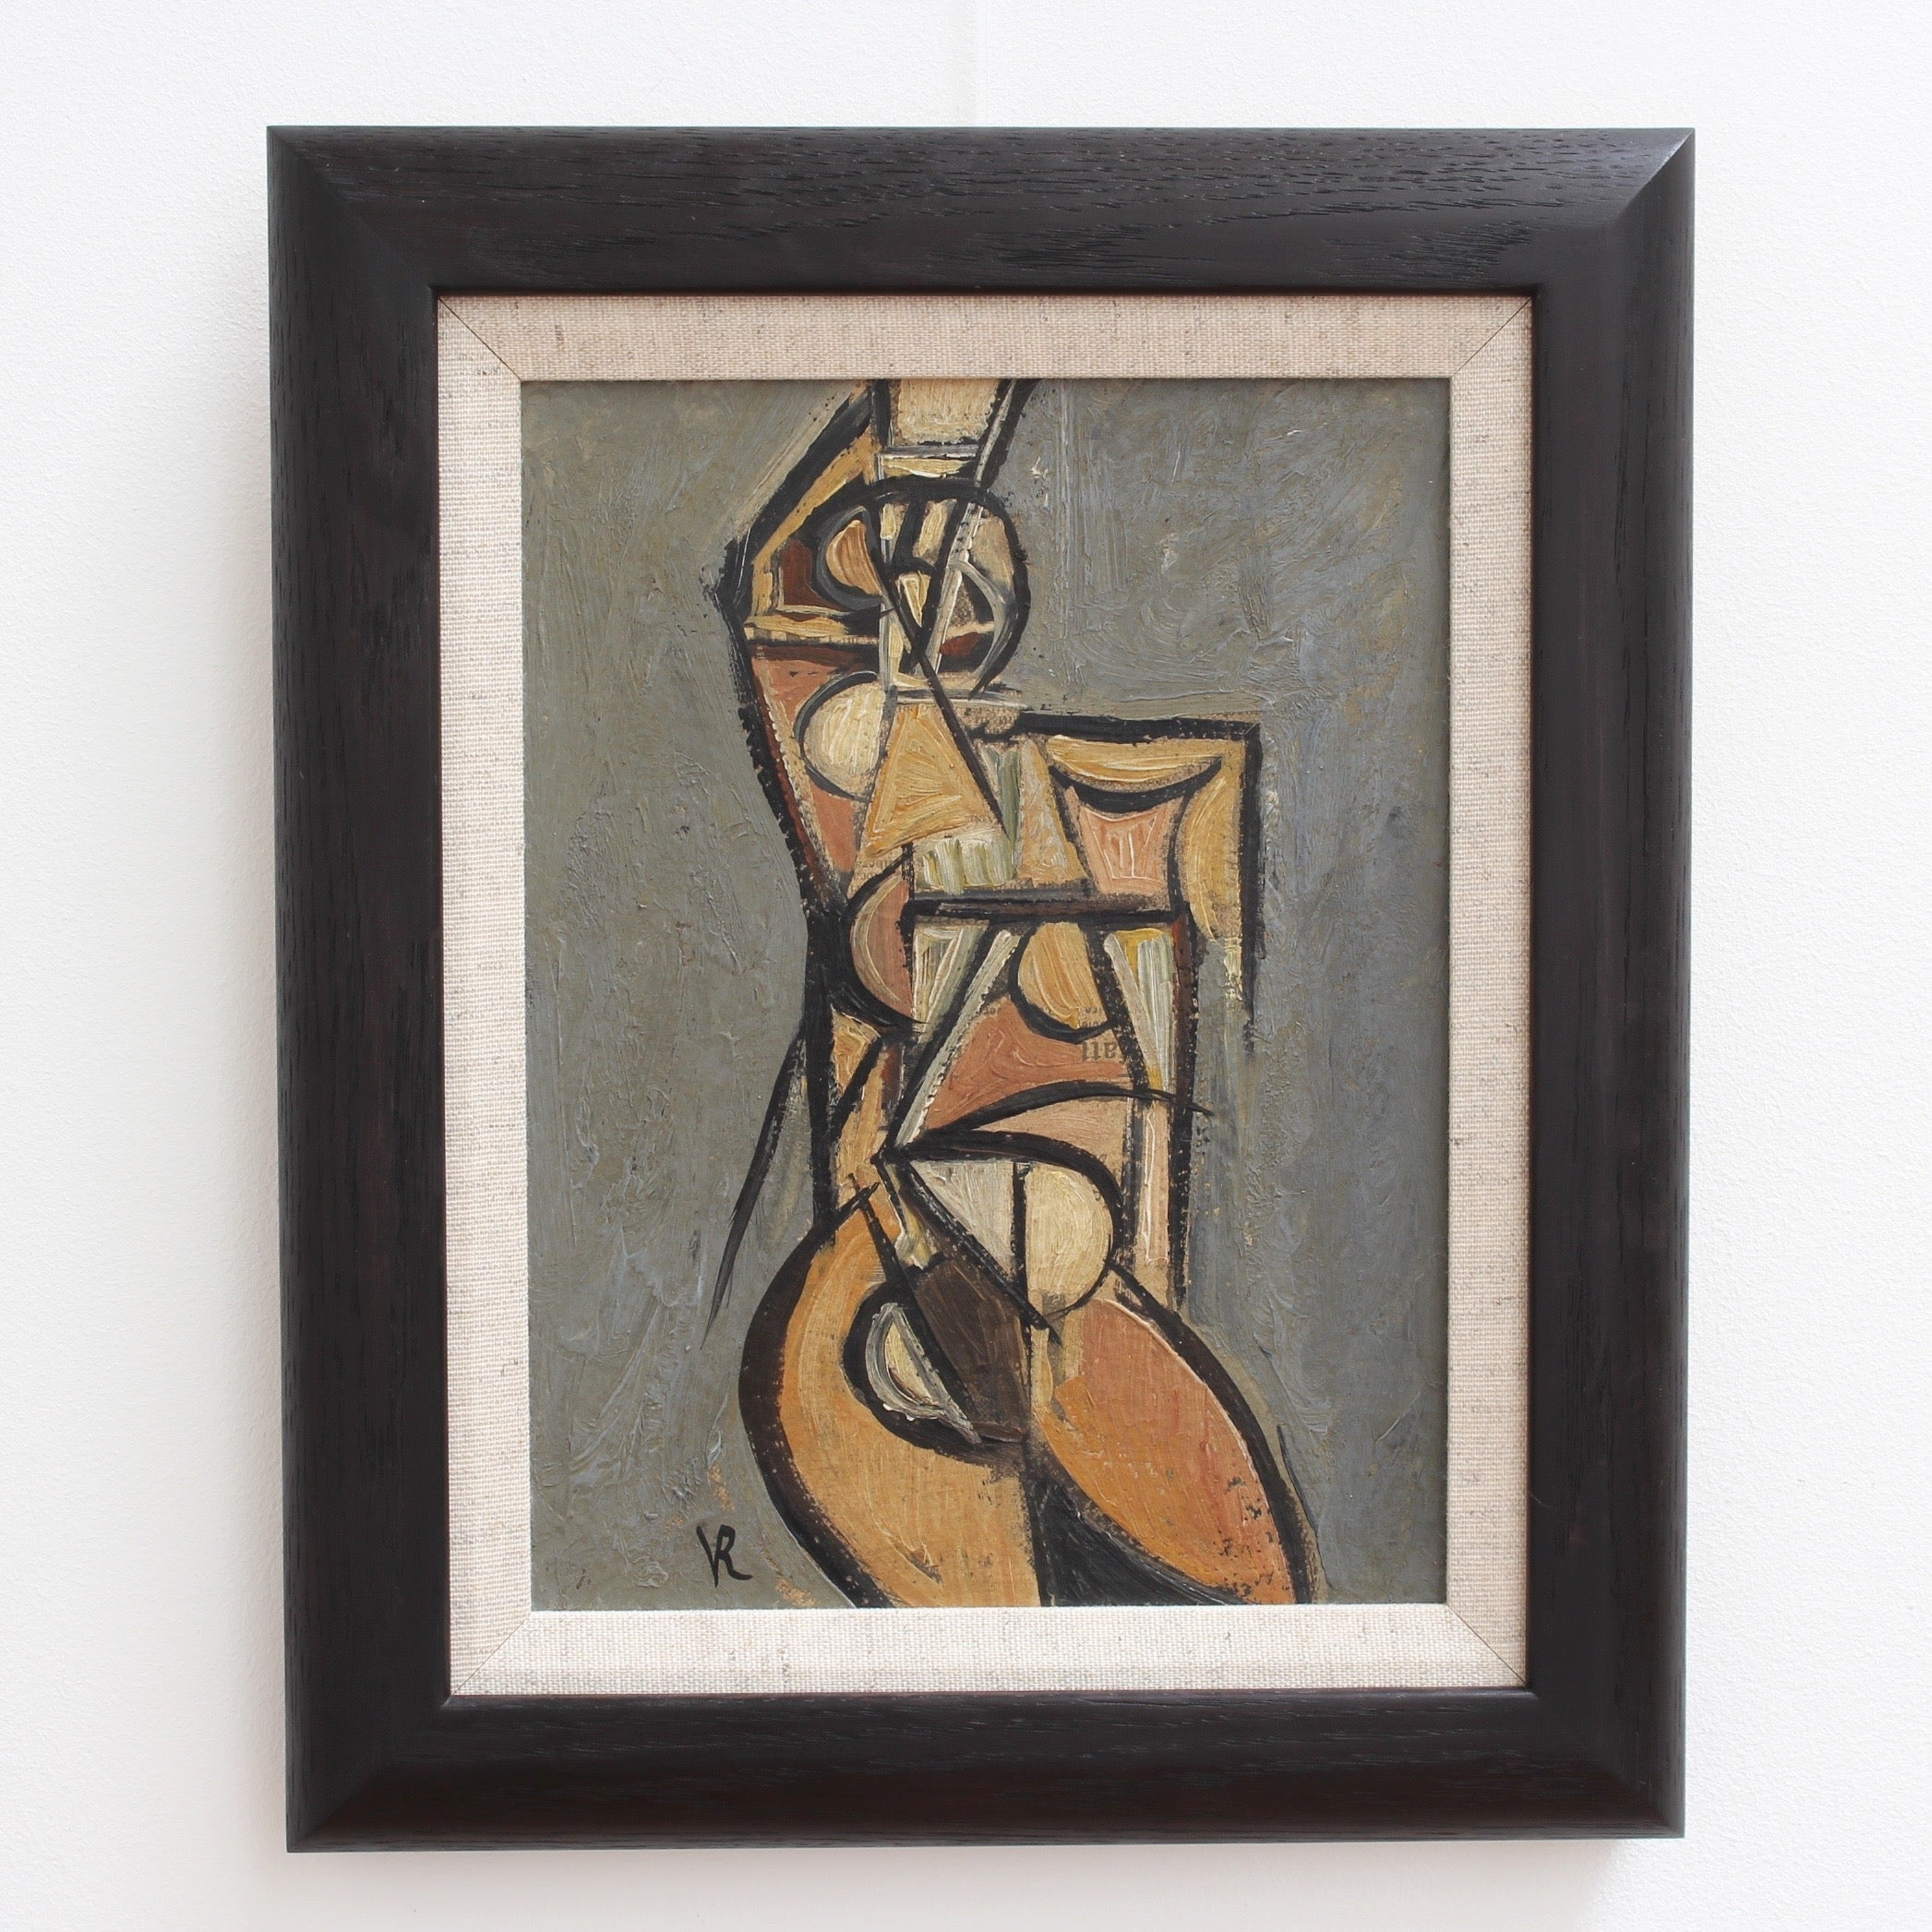 'Portrait of a Posing Nude' by V.R. (Circa 1940s - 1950s)